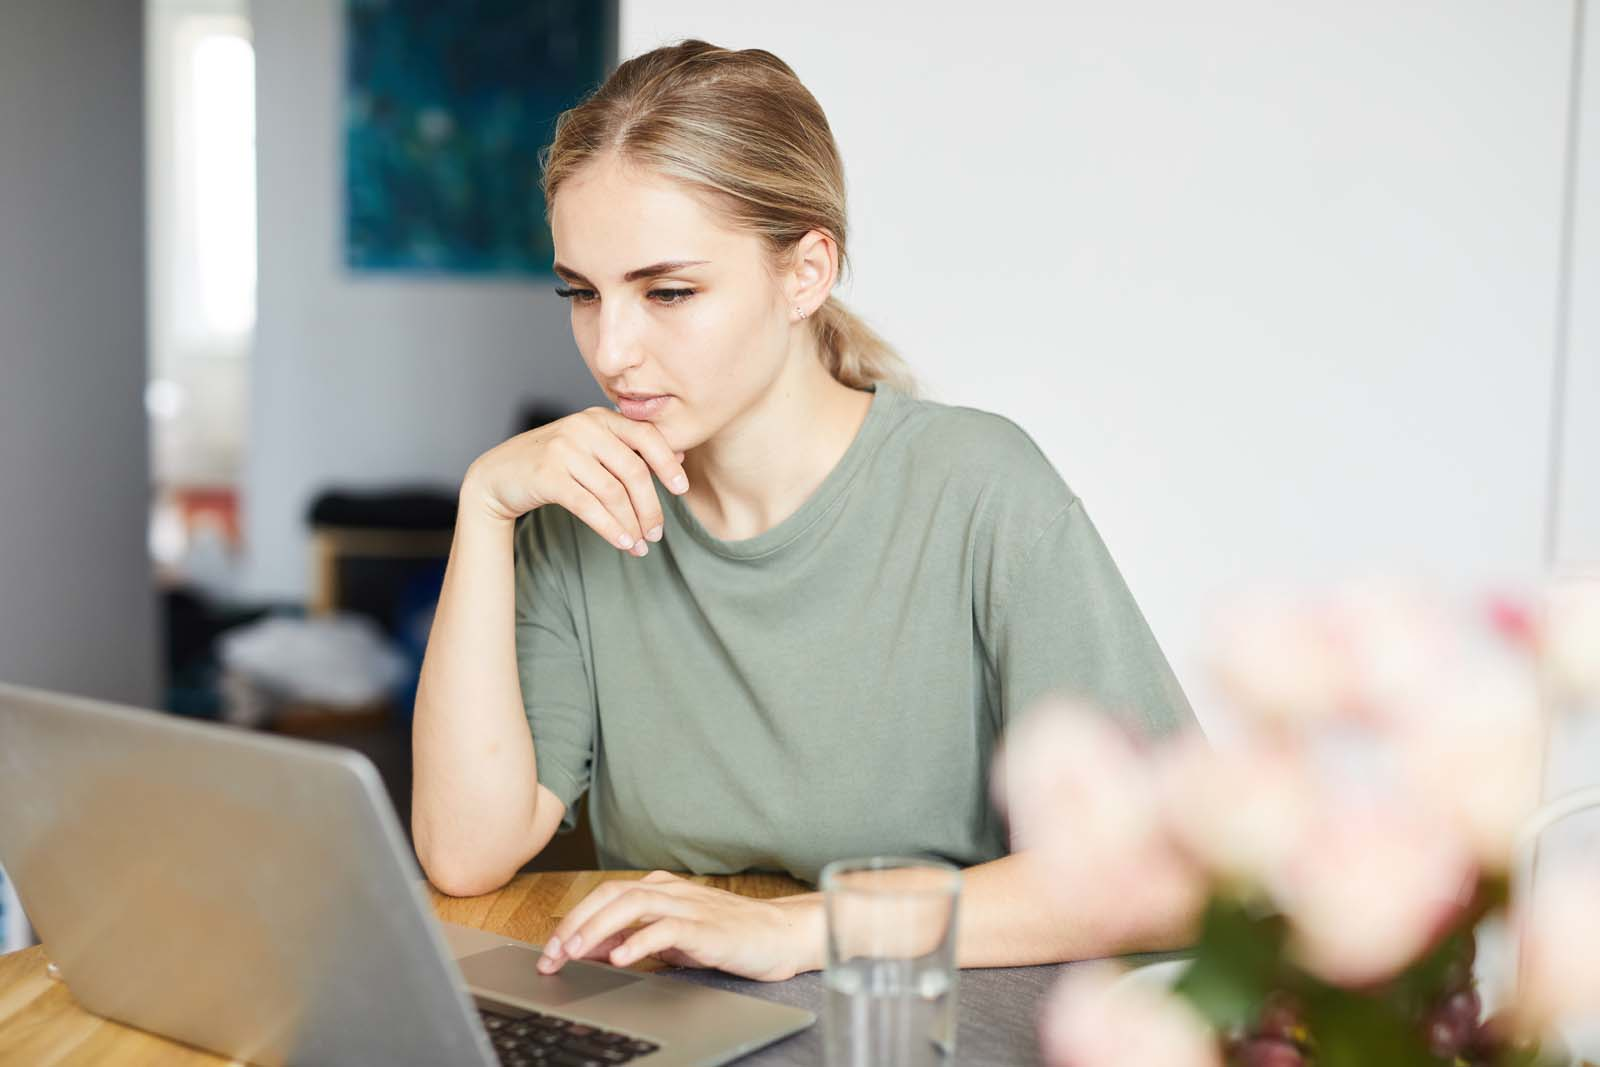 freelance woman working on her computer